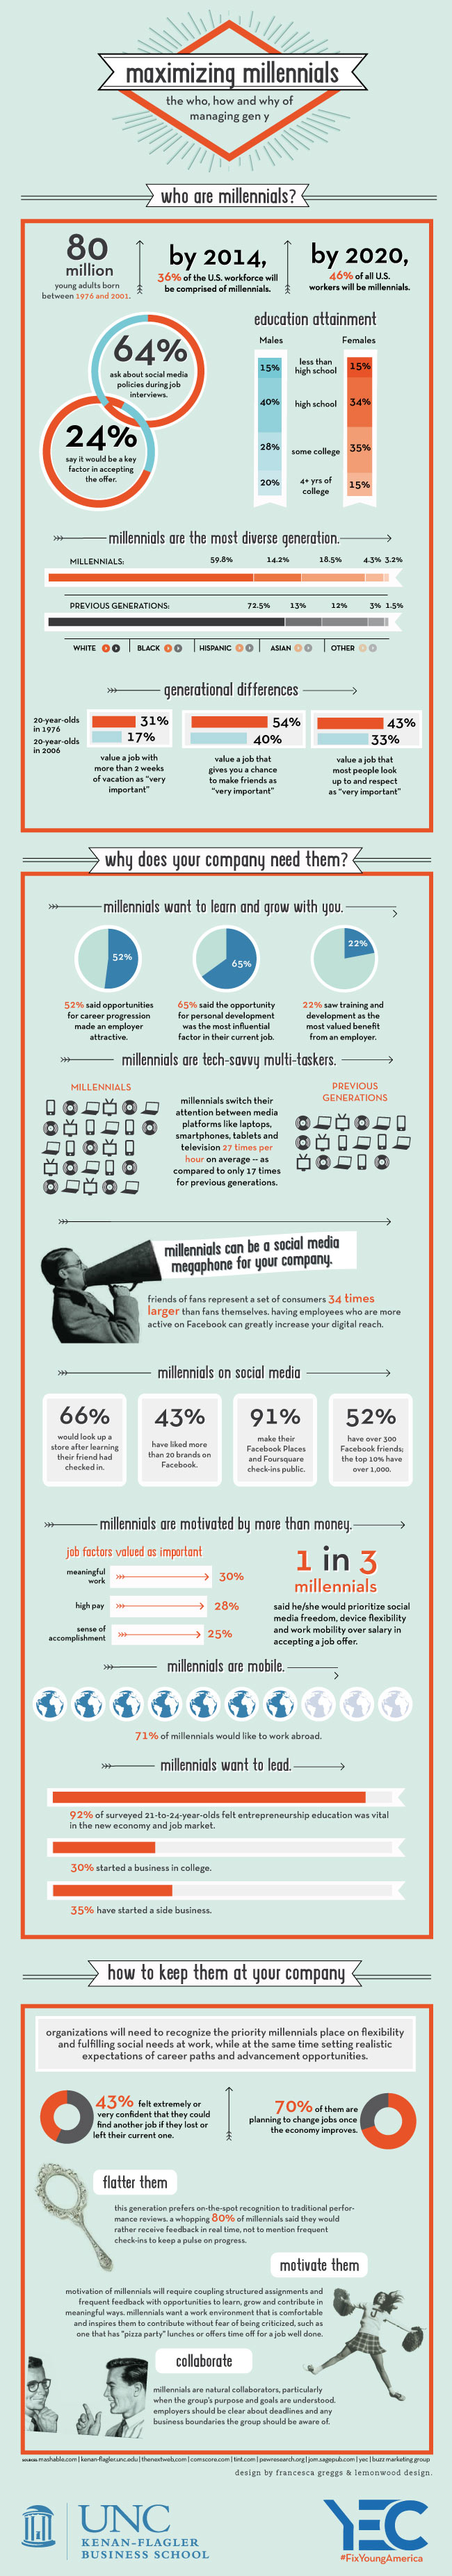 geny-in-the-workplace-infographic-mba-at-unc-1